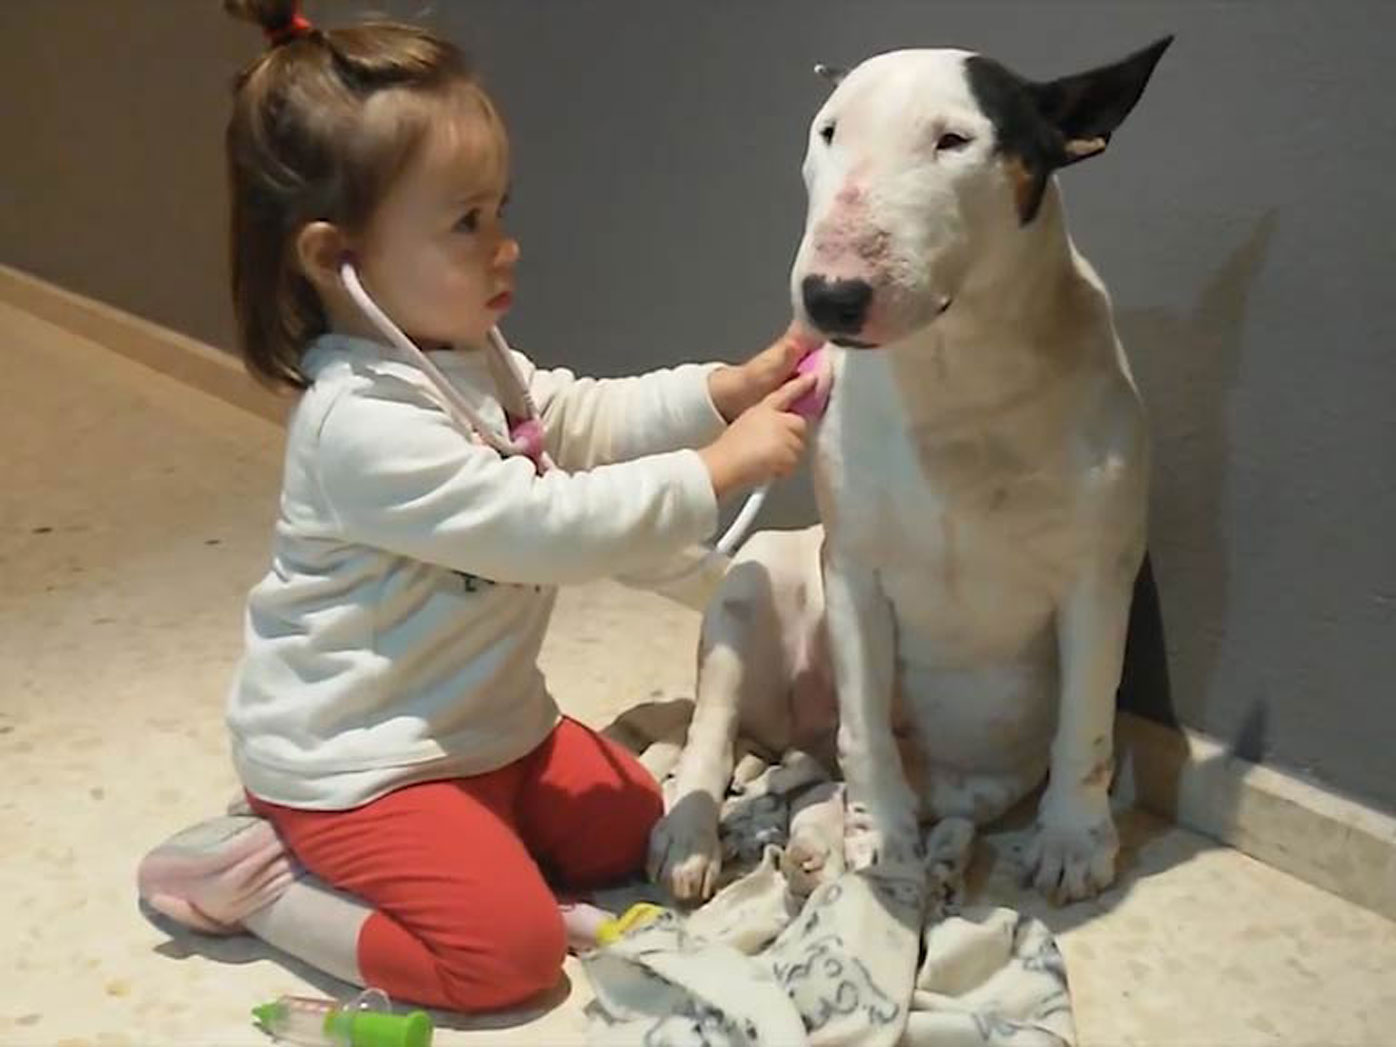 A patient pit bull endures playtime check-up